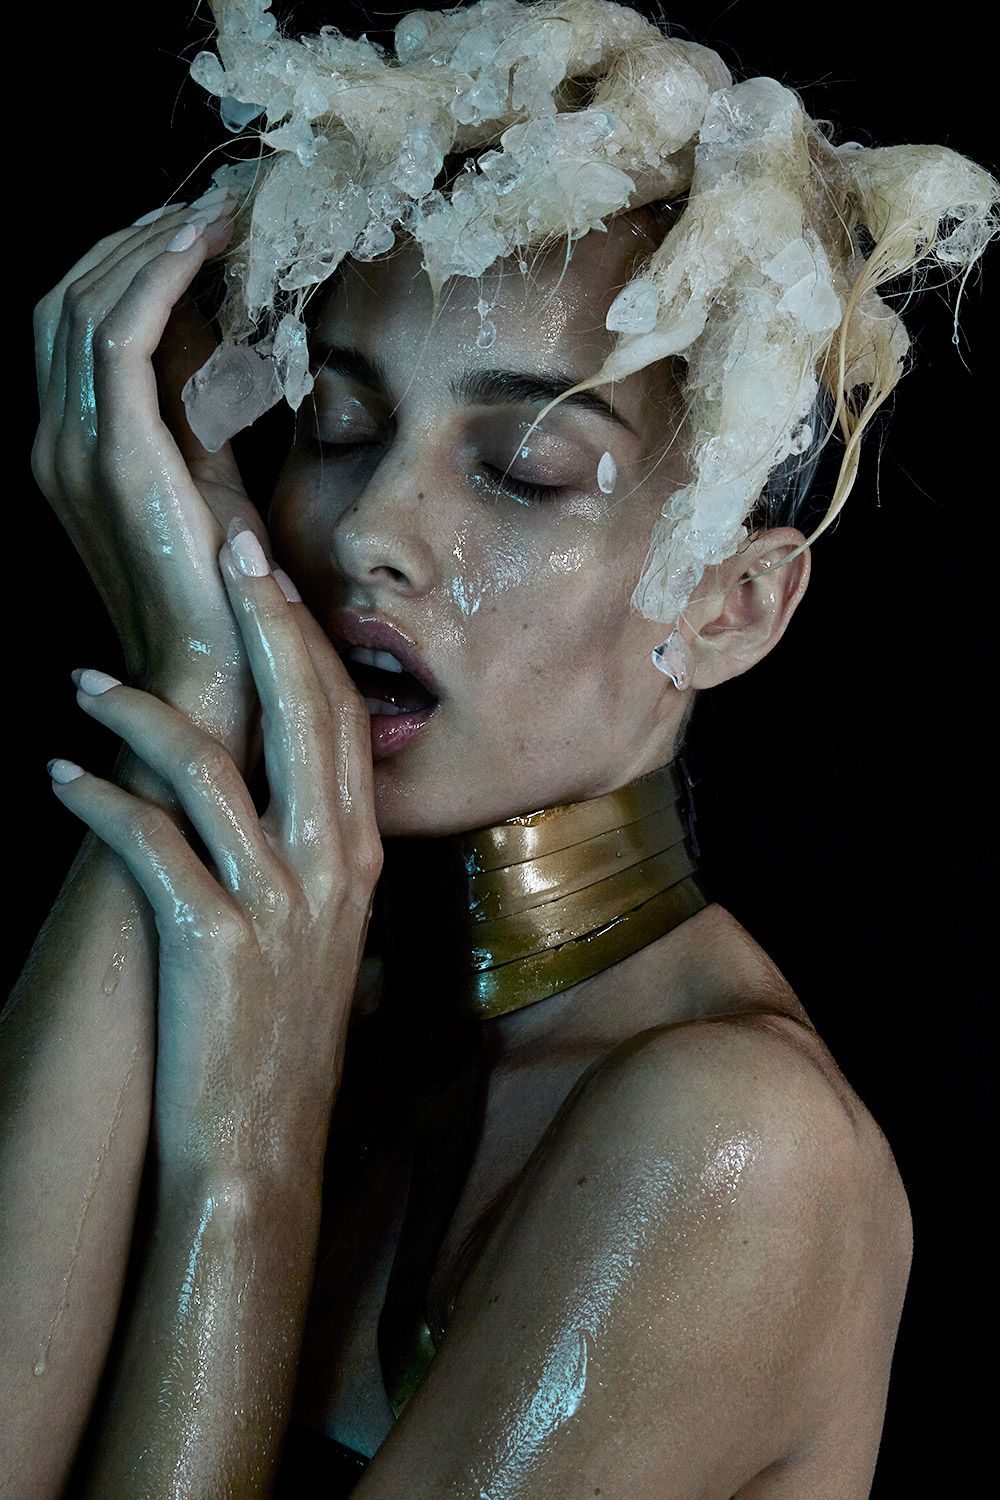 Glitter Face Neon Colored Powder Gold Leaf Textured Edgy Editorial Creative Makeup Iceicle Hair Beauty Editorial with model Cris Stamboroski